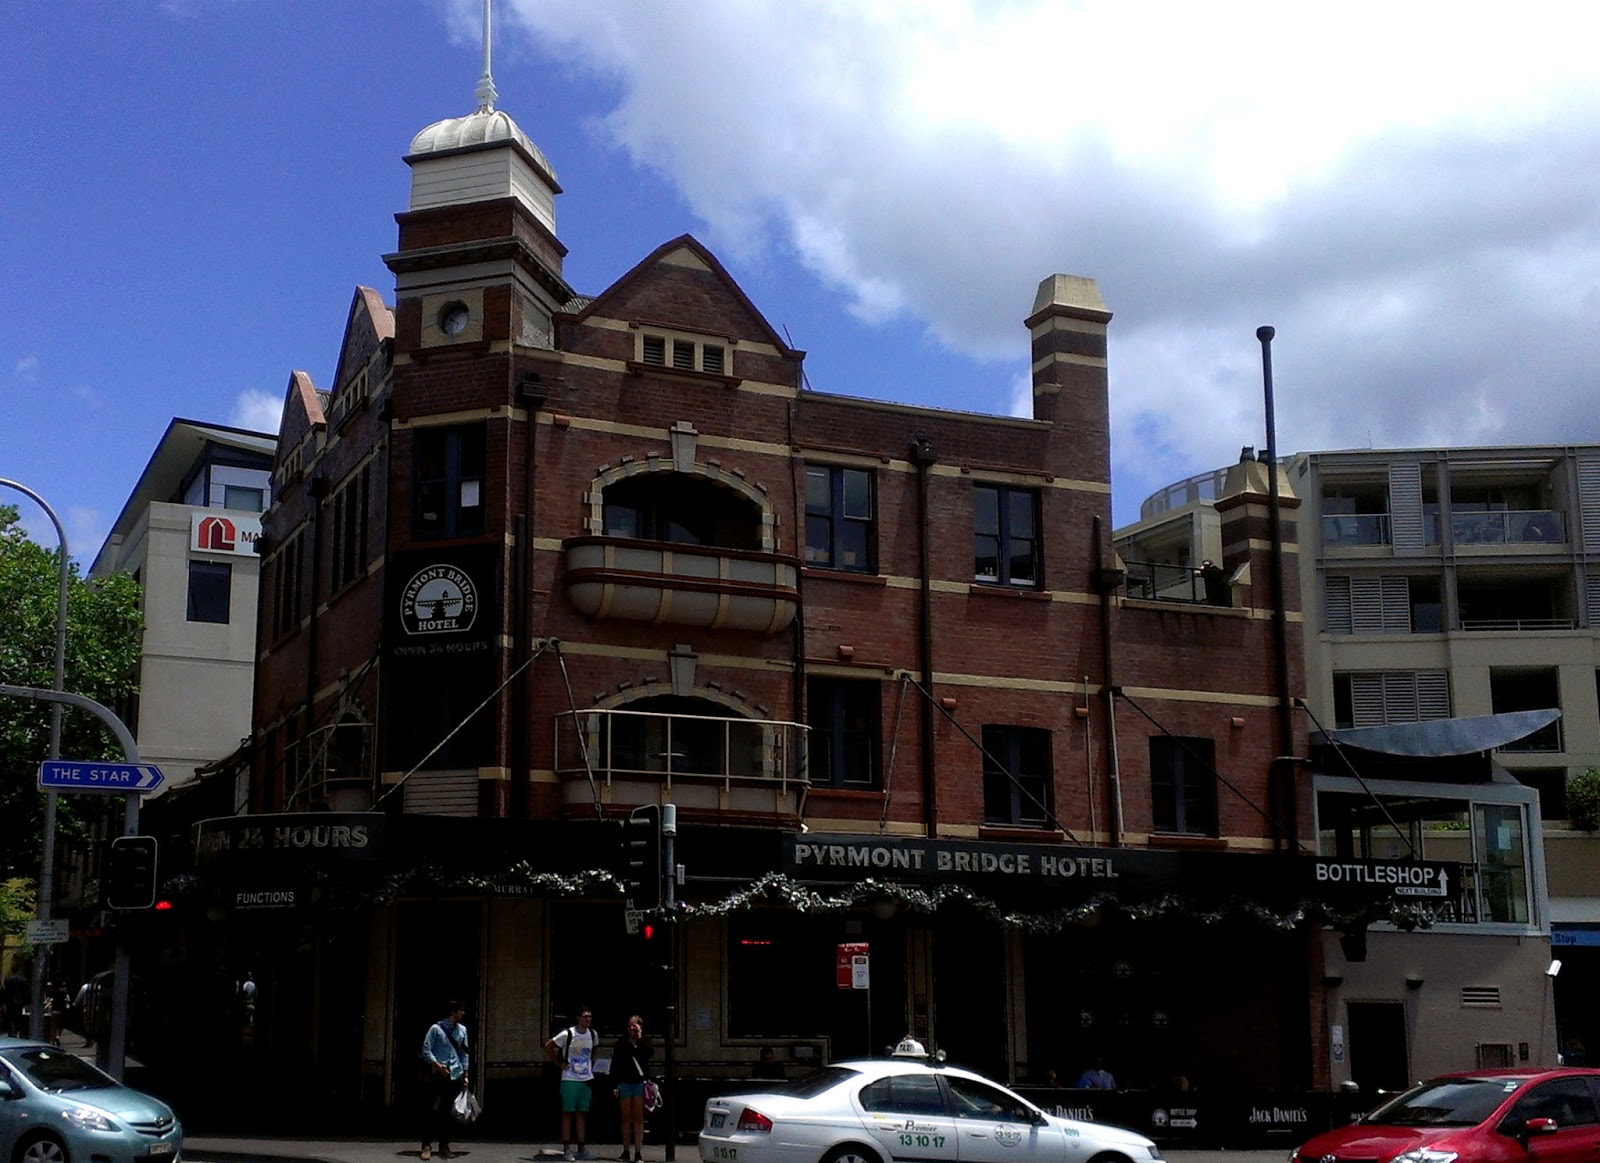 96 Union St Pyrmont Reviewers Present Robot Simone Joe Blogs Time Of Review Boxing Day Lunch Contributions Burger Bot Miller Southy